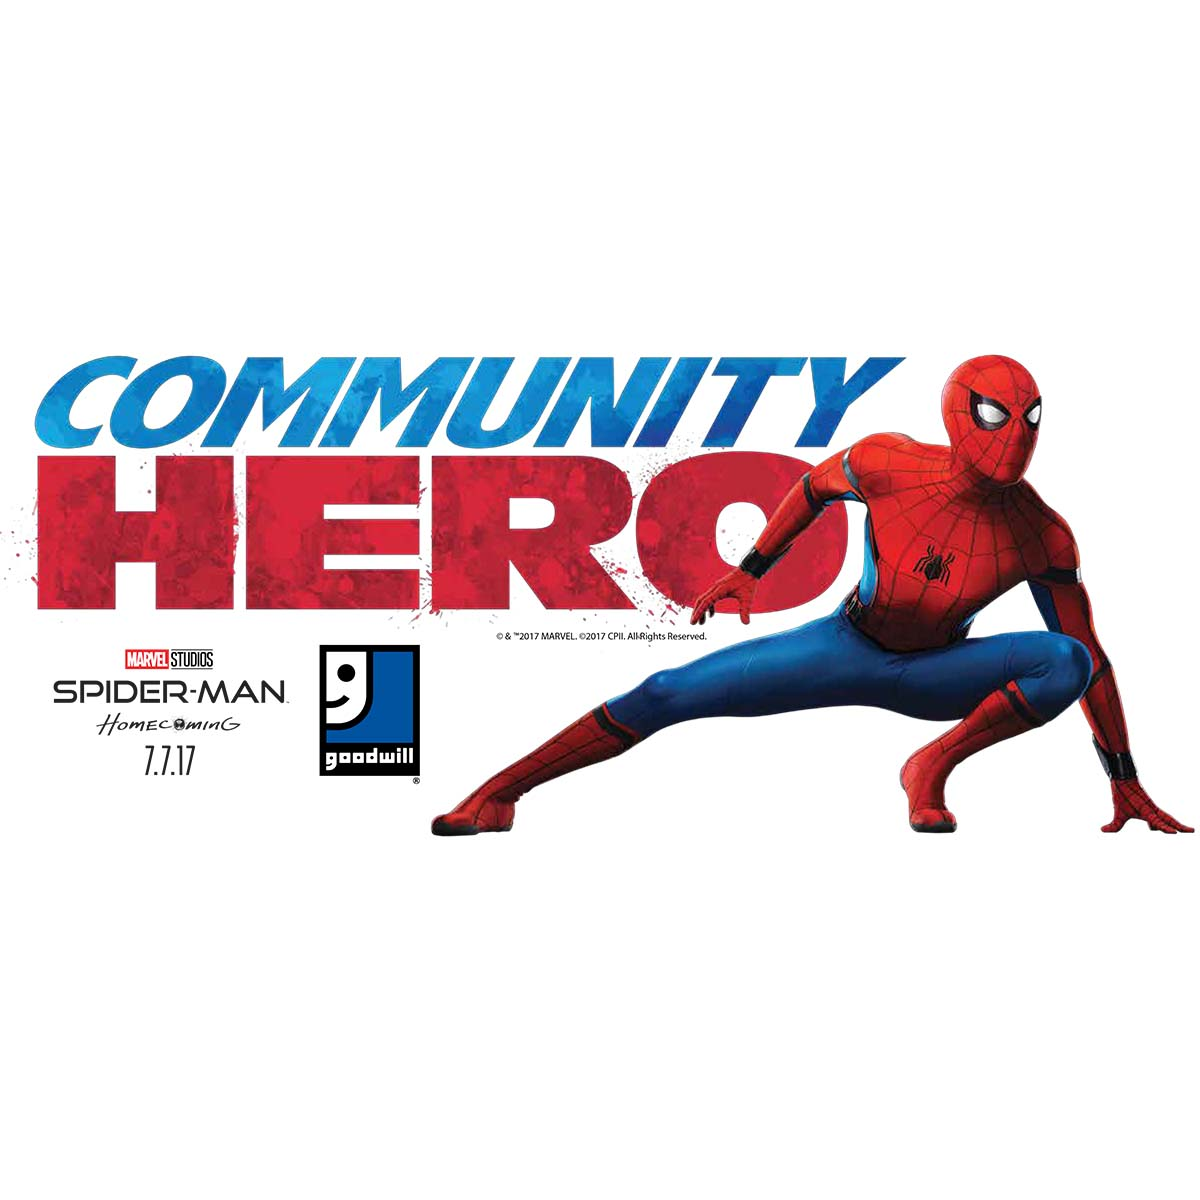 Be a hero in your community